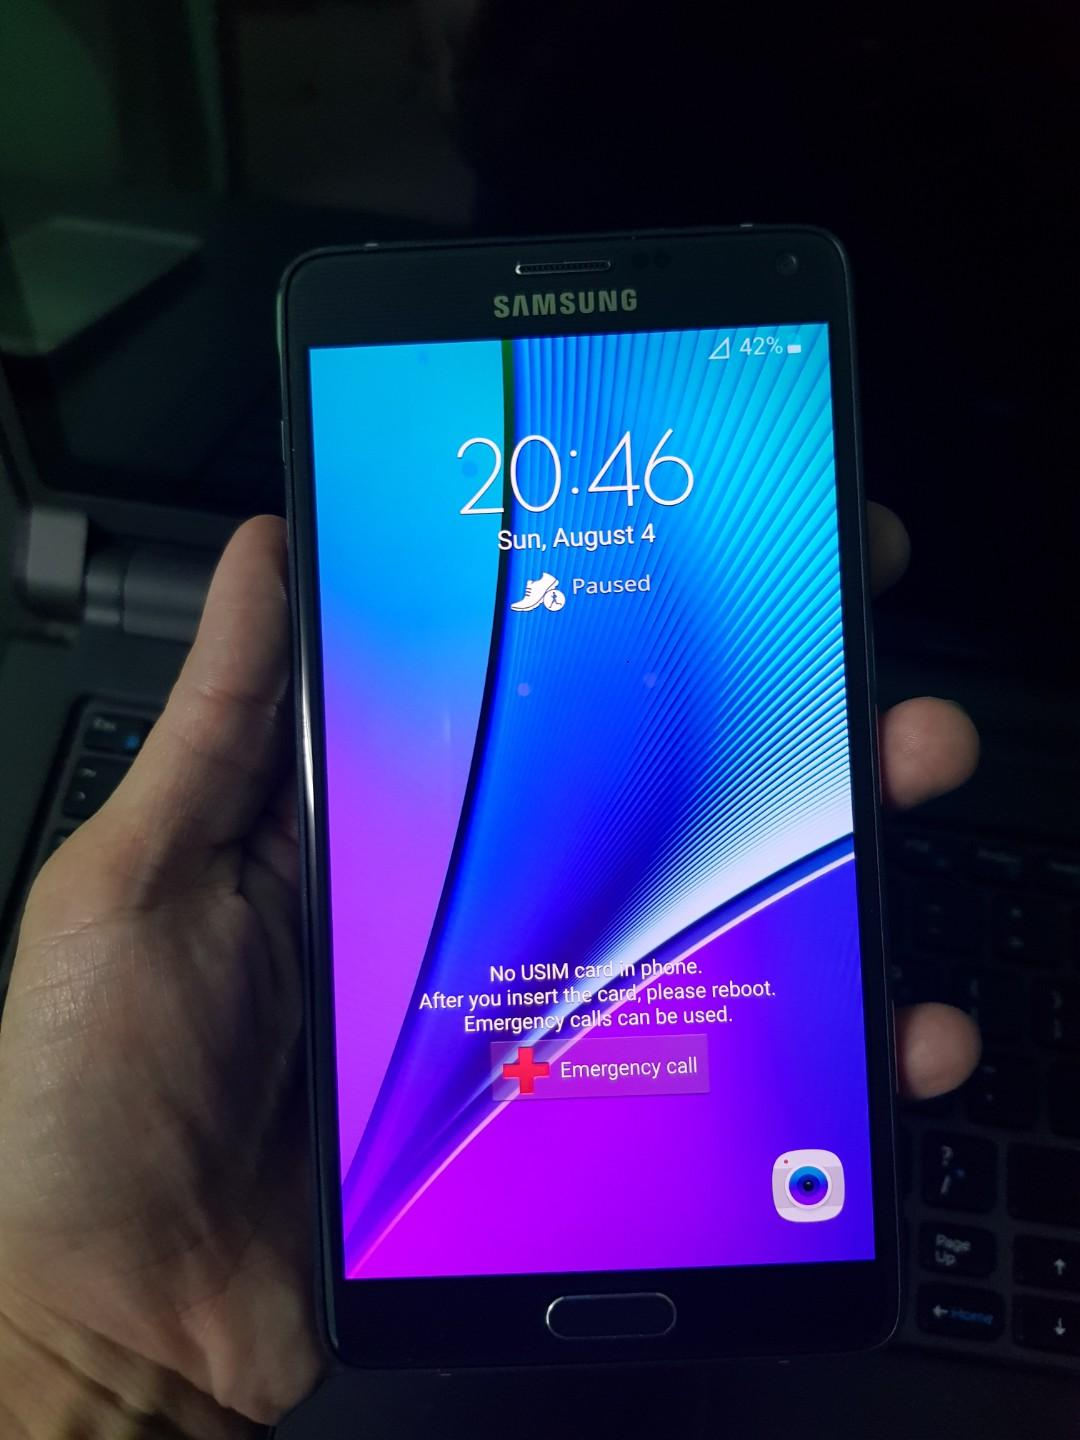 Samsung Note 4 (Localized Rom) on Carousell